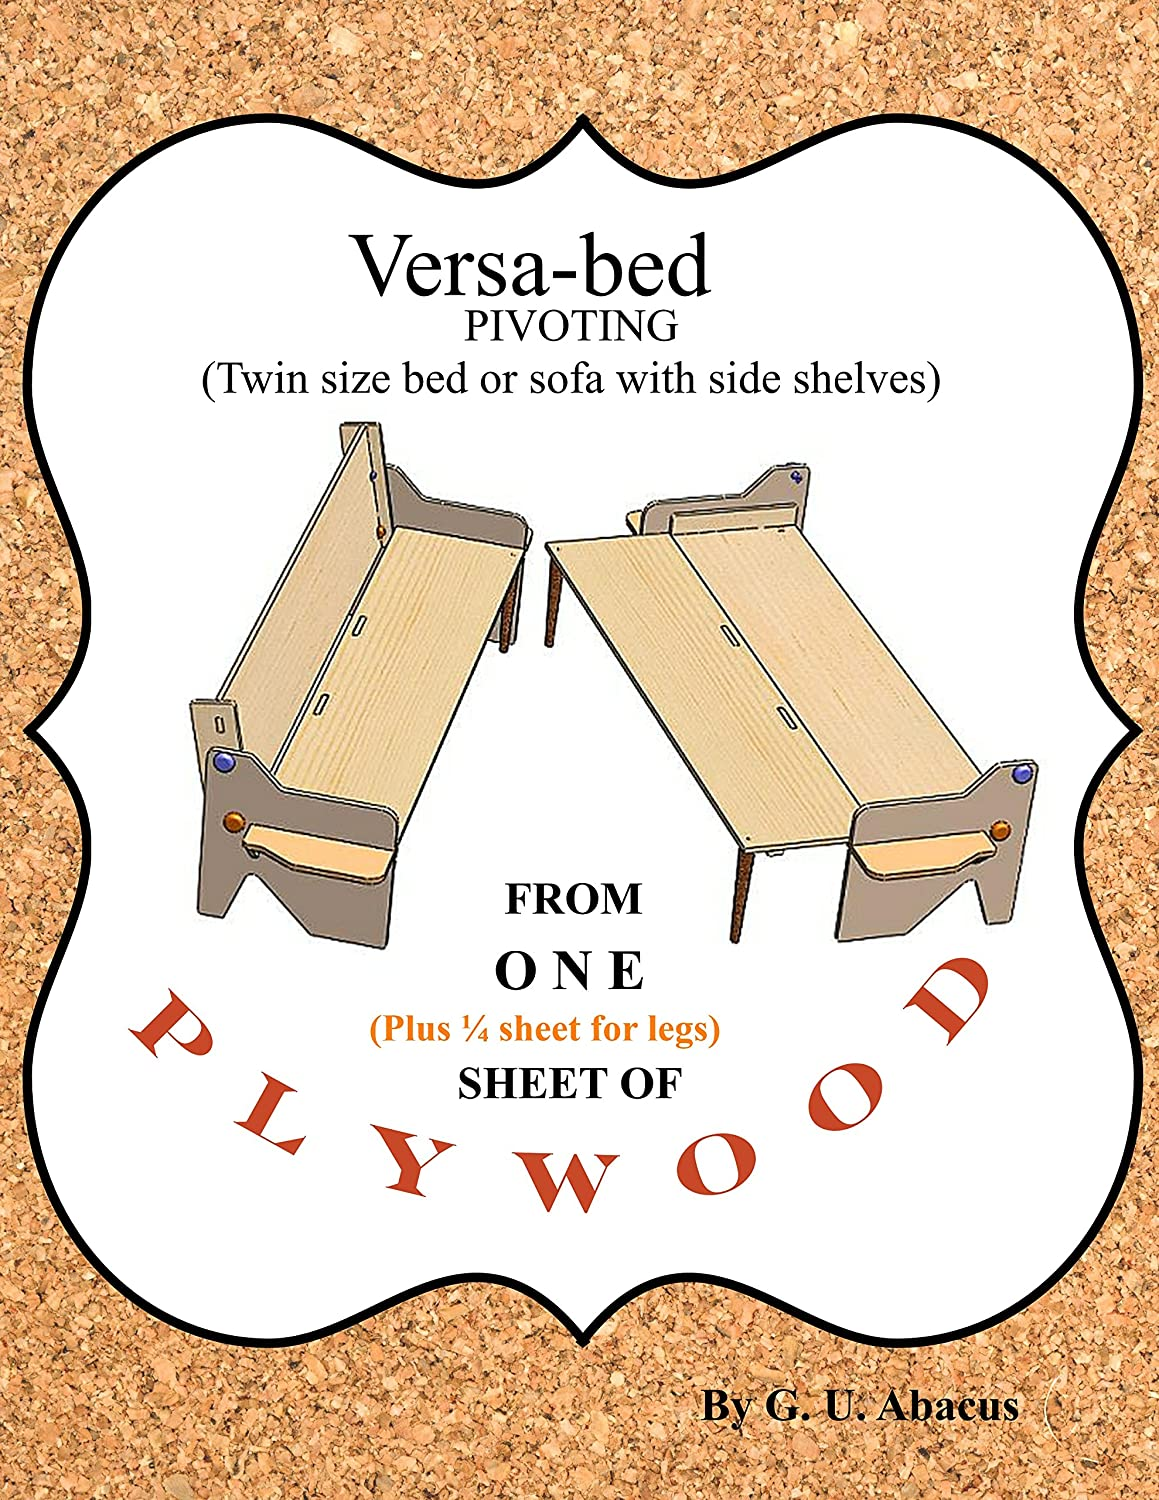 Versa-bed pivoting: Twin size bed or sofa with side shelves ...